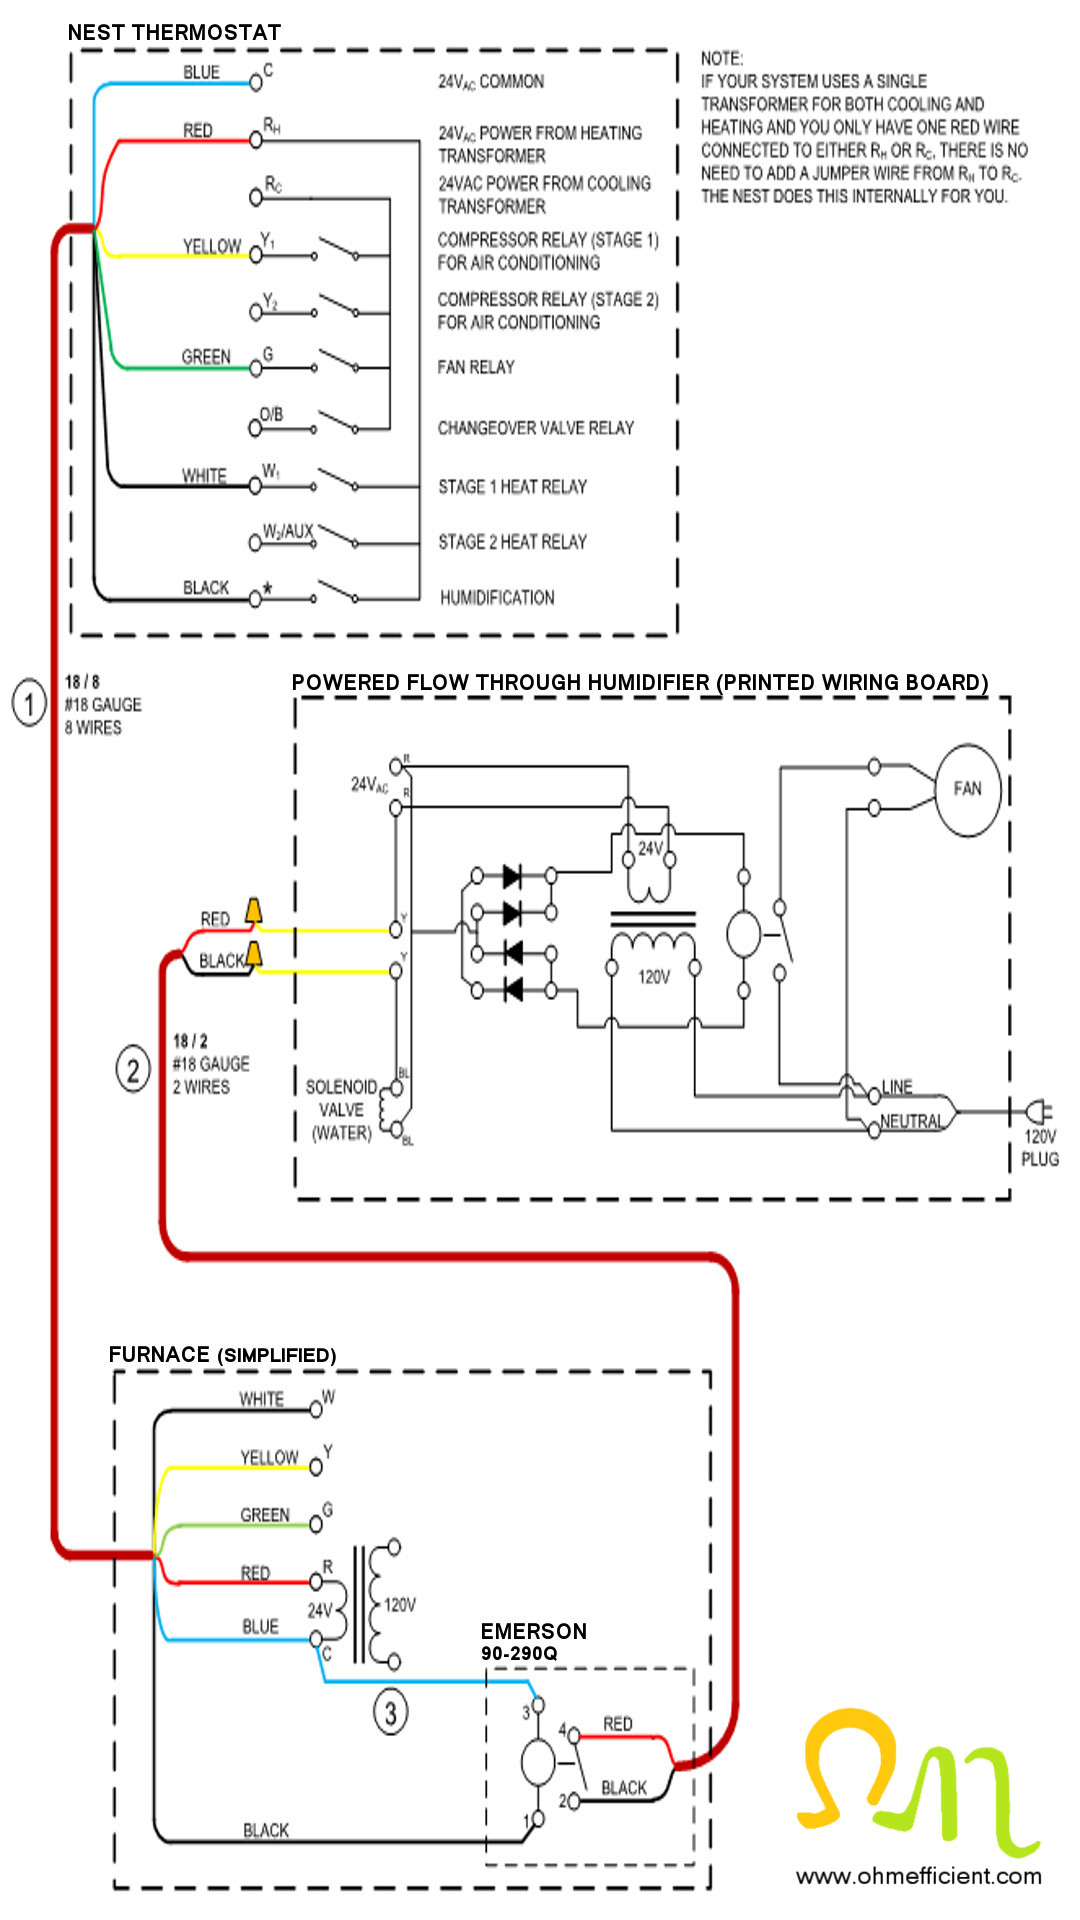 How To Connect & Setup A Nest Thermostat To Function As A Humidistat - Google Nest Thermostat Wiring Diagram